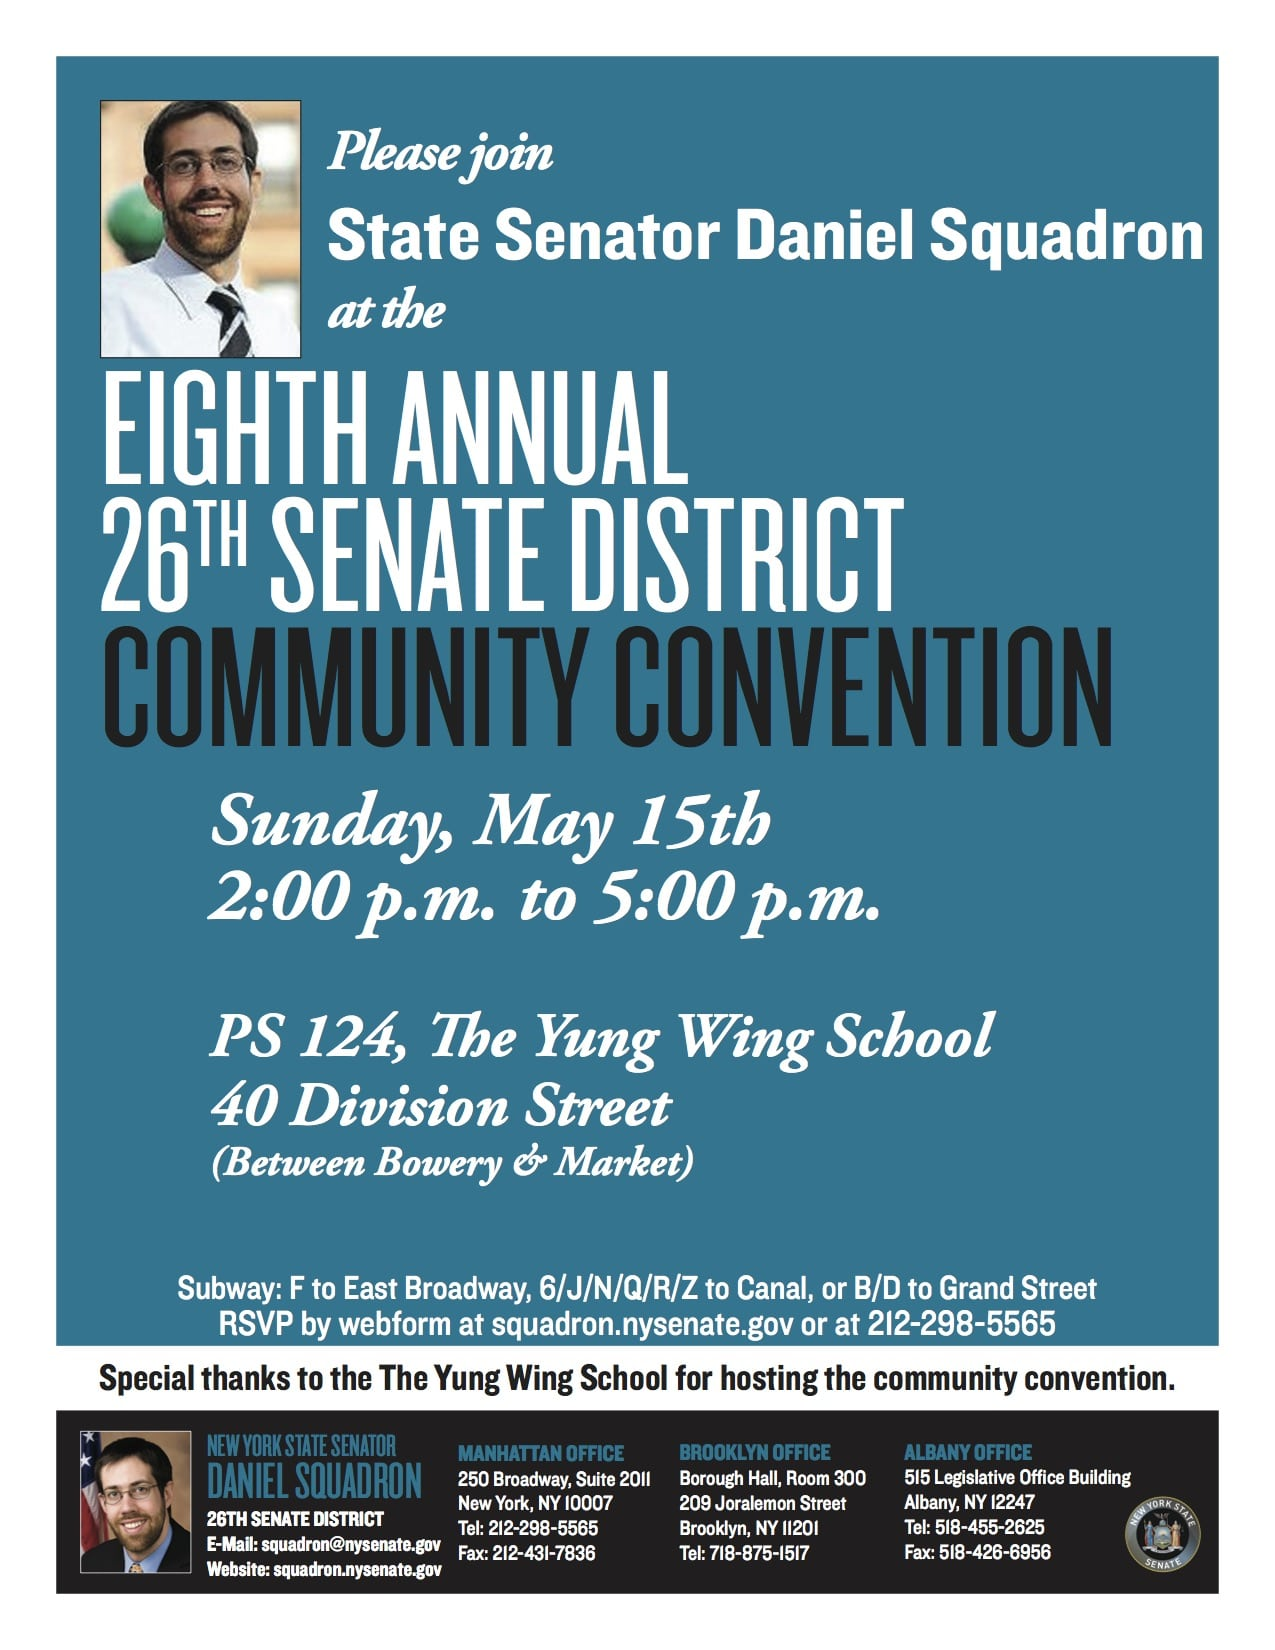 Squadron 2016 Community Convention flyer